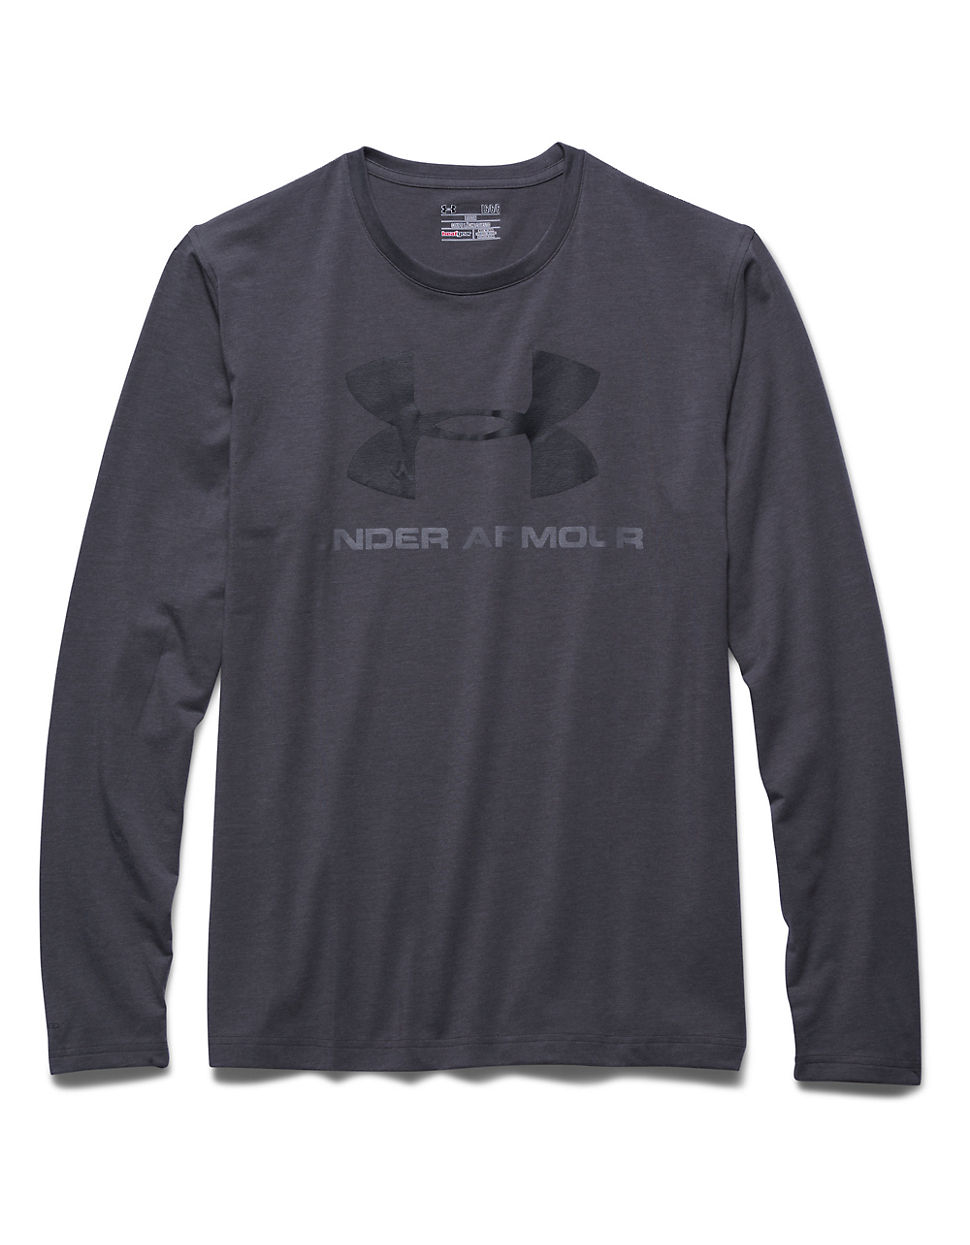 Under armour sportstyle logo shirt in gray for men lyst for Gray under armour shirt